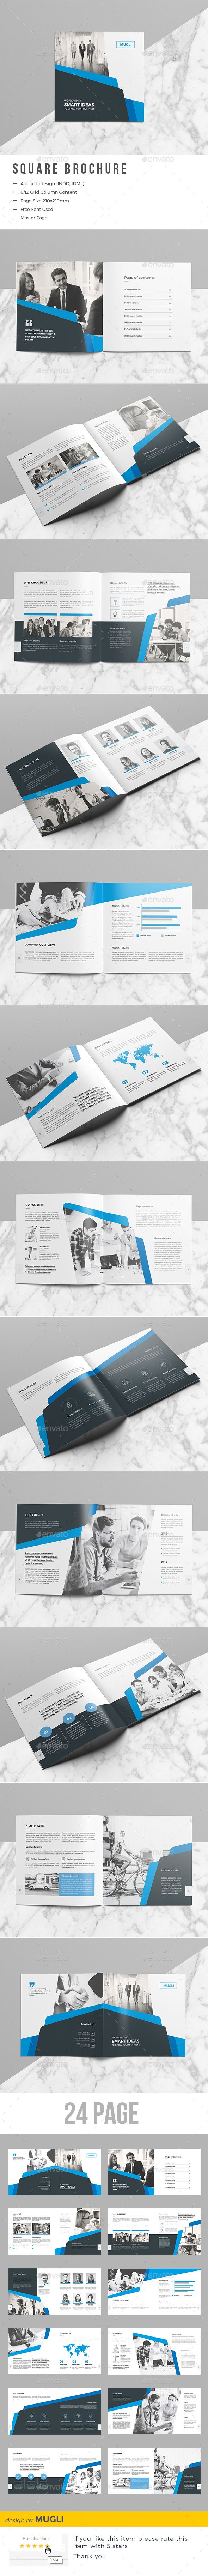 The Square Brochure Template InDesign INDD | Brochure Templates ...